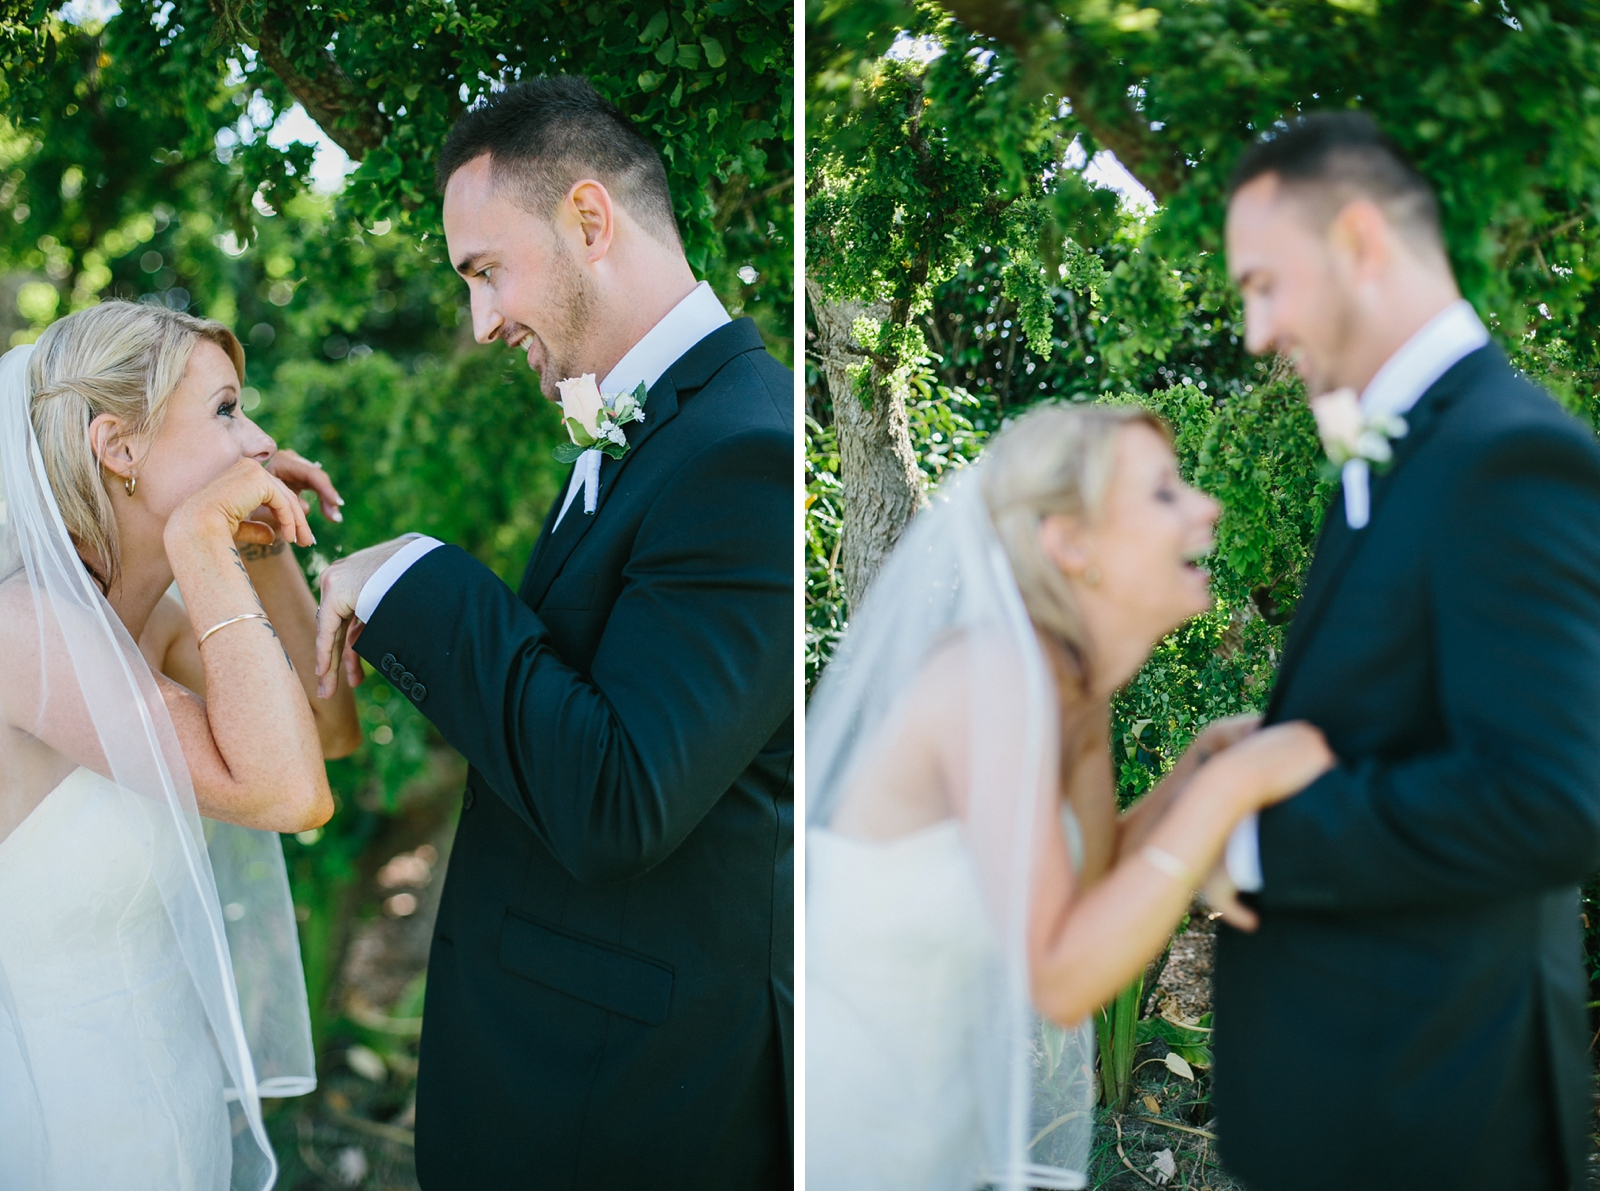 ConnorLaura_Auckland Wedding Photographer_Patty Lagera_0080.jpg